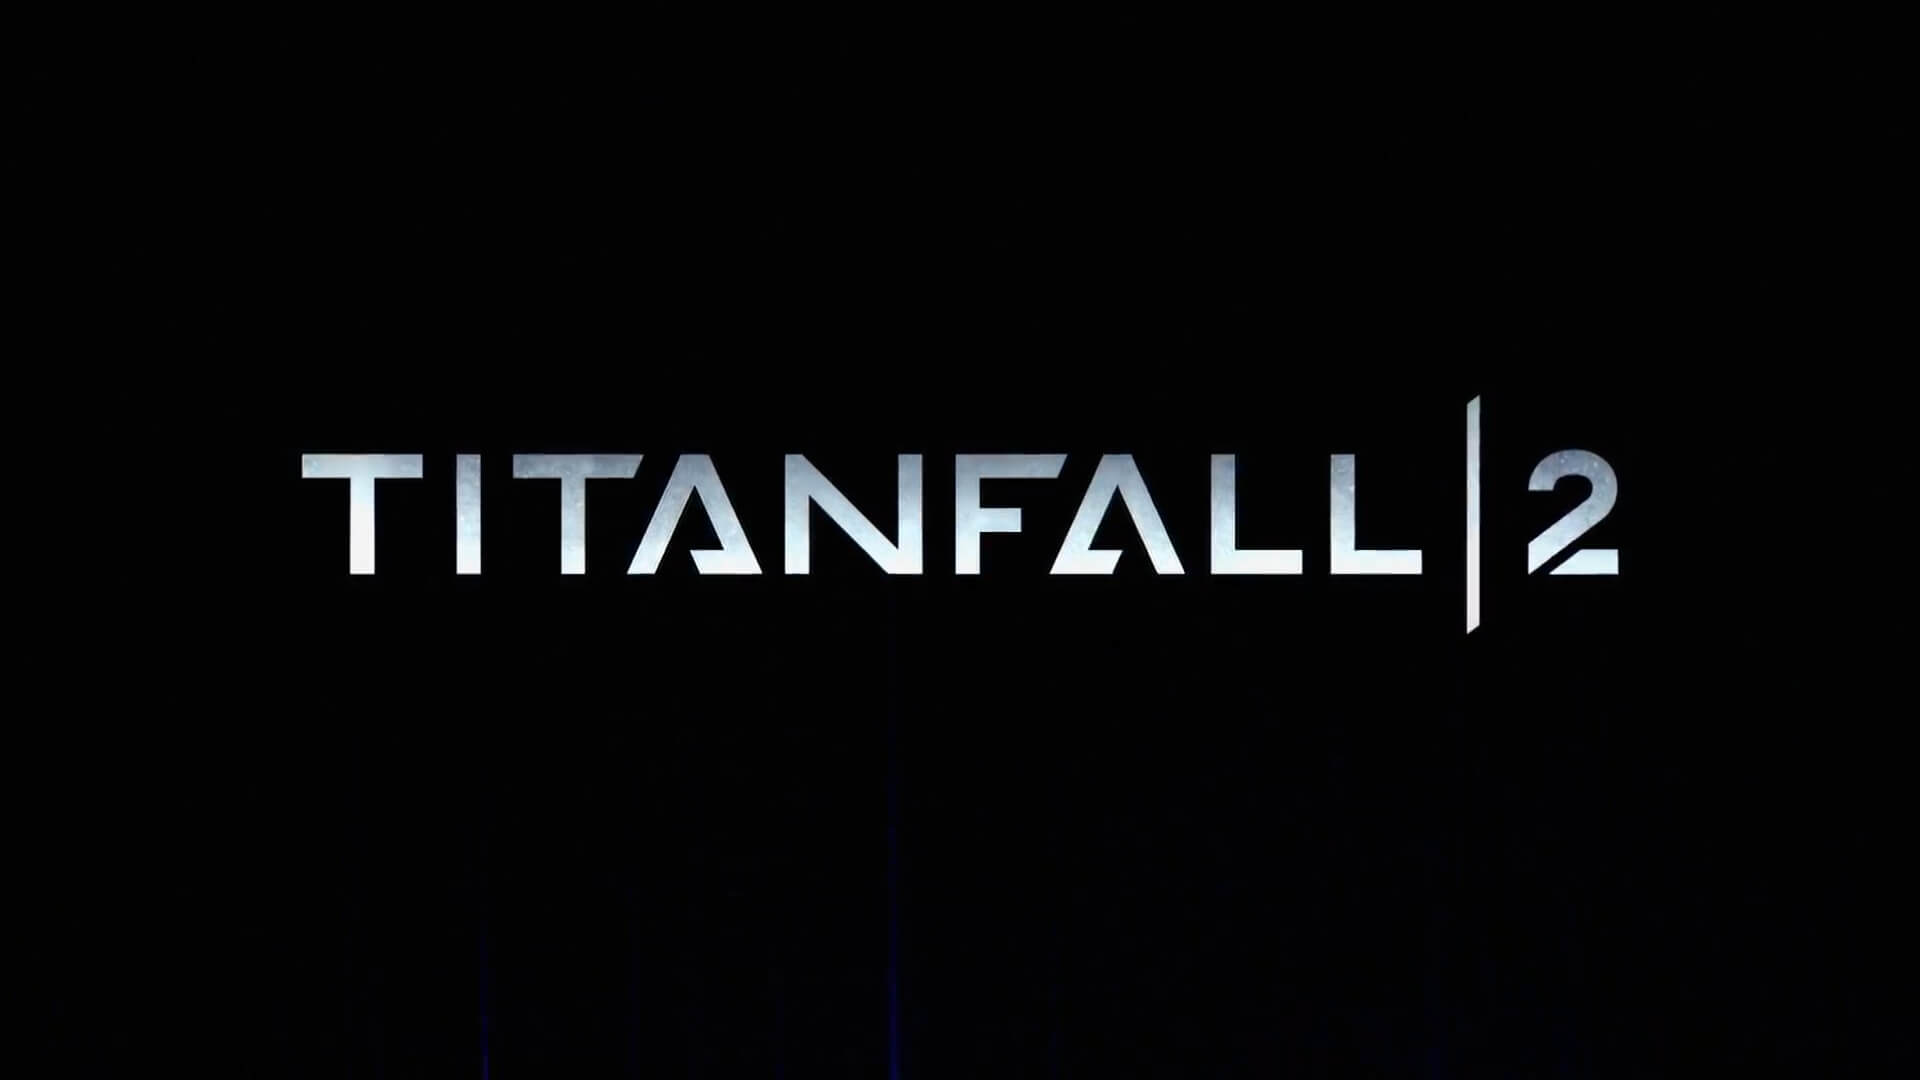 Titanfall 2 Download Crack Free + Torrent